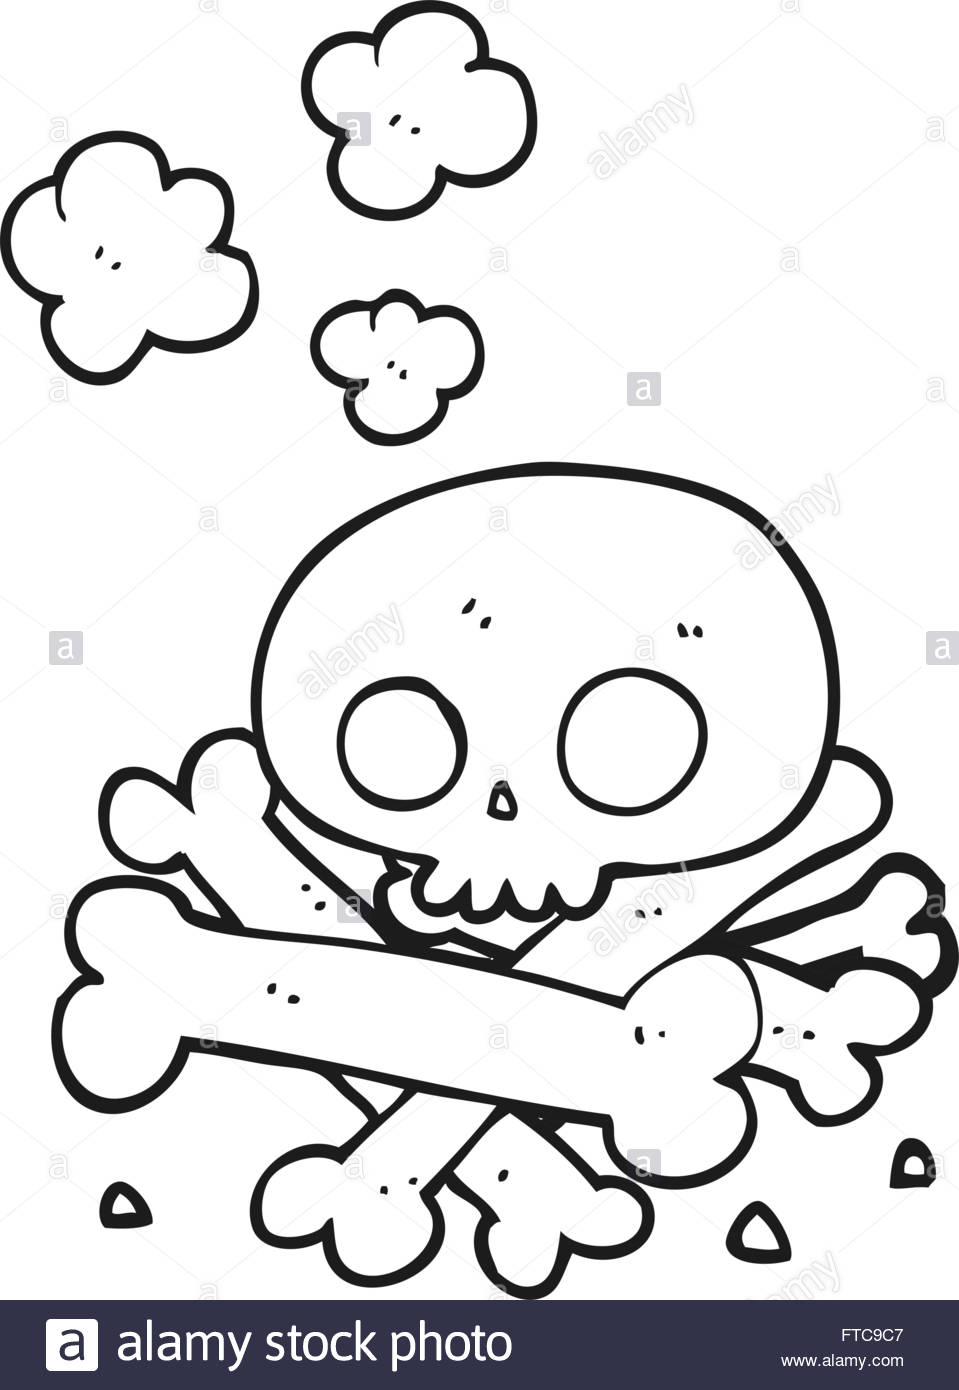 959x1390 Freehand Drawn Black And White Cartoon Pile Of Bones Stock Vector